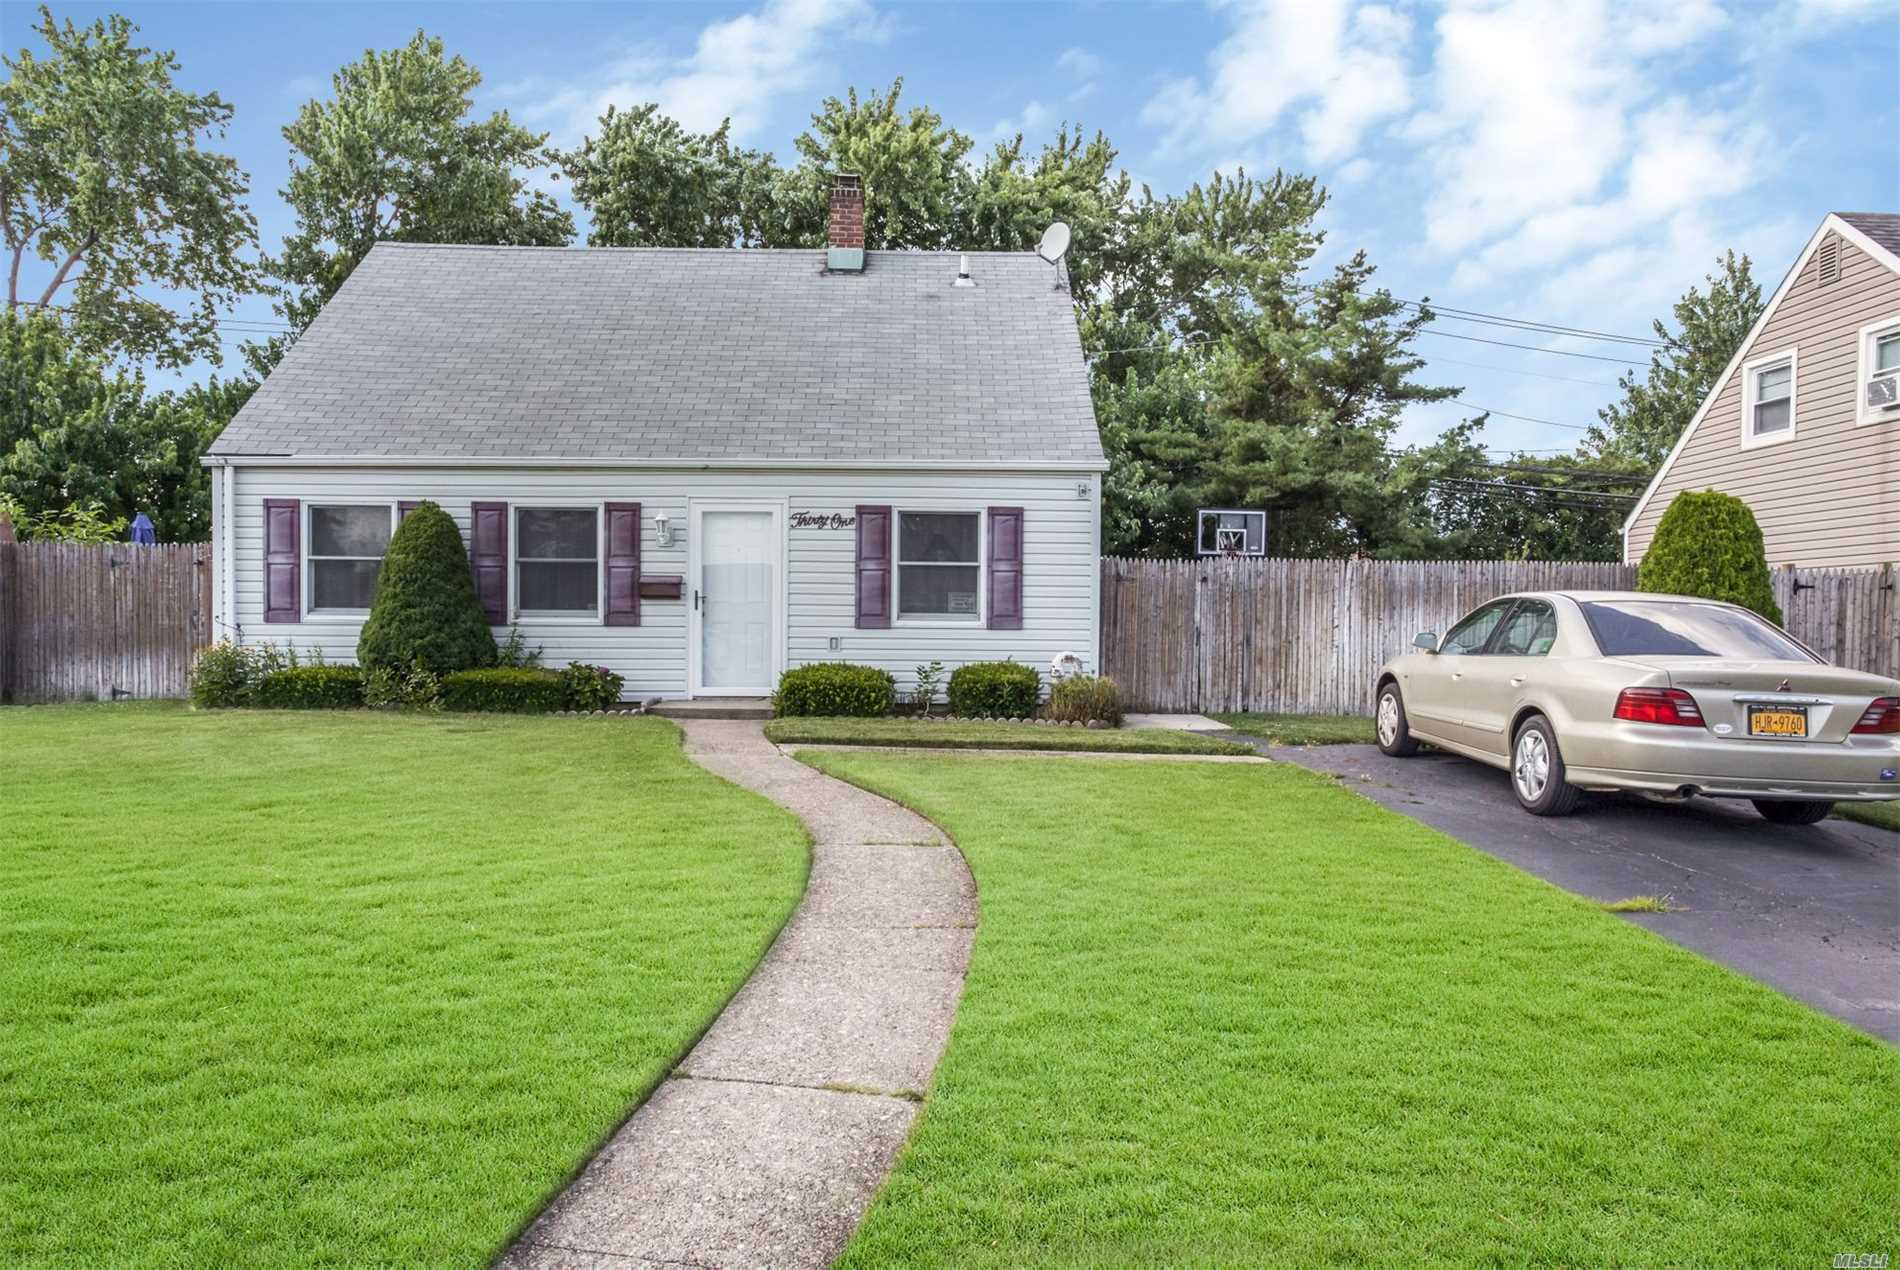 Charming Cape 3-4 Bedrooms With Updated Bath And Kitchen. Great For First Time Home Buyer With Low Taxes. Abbey, Salk Macarthur Schools